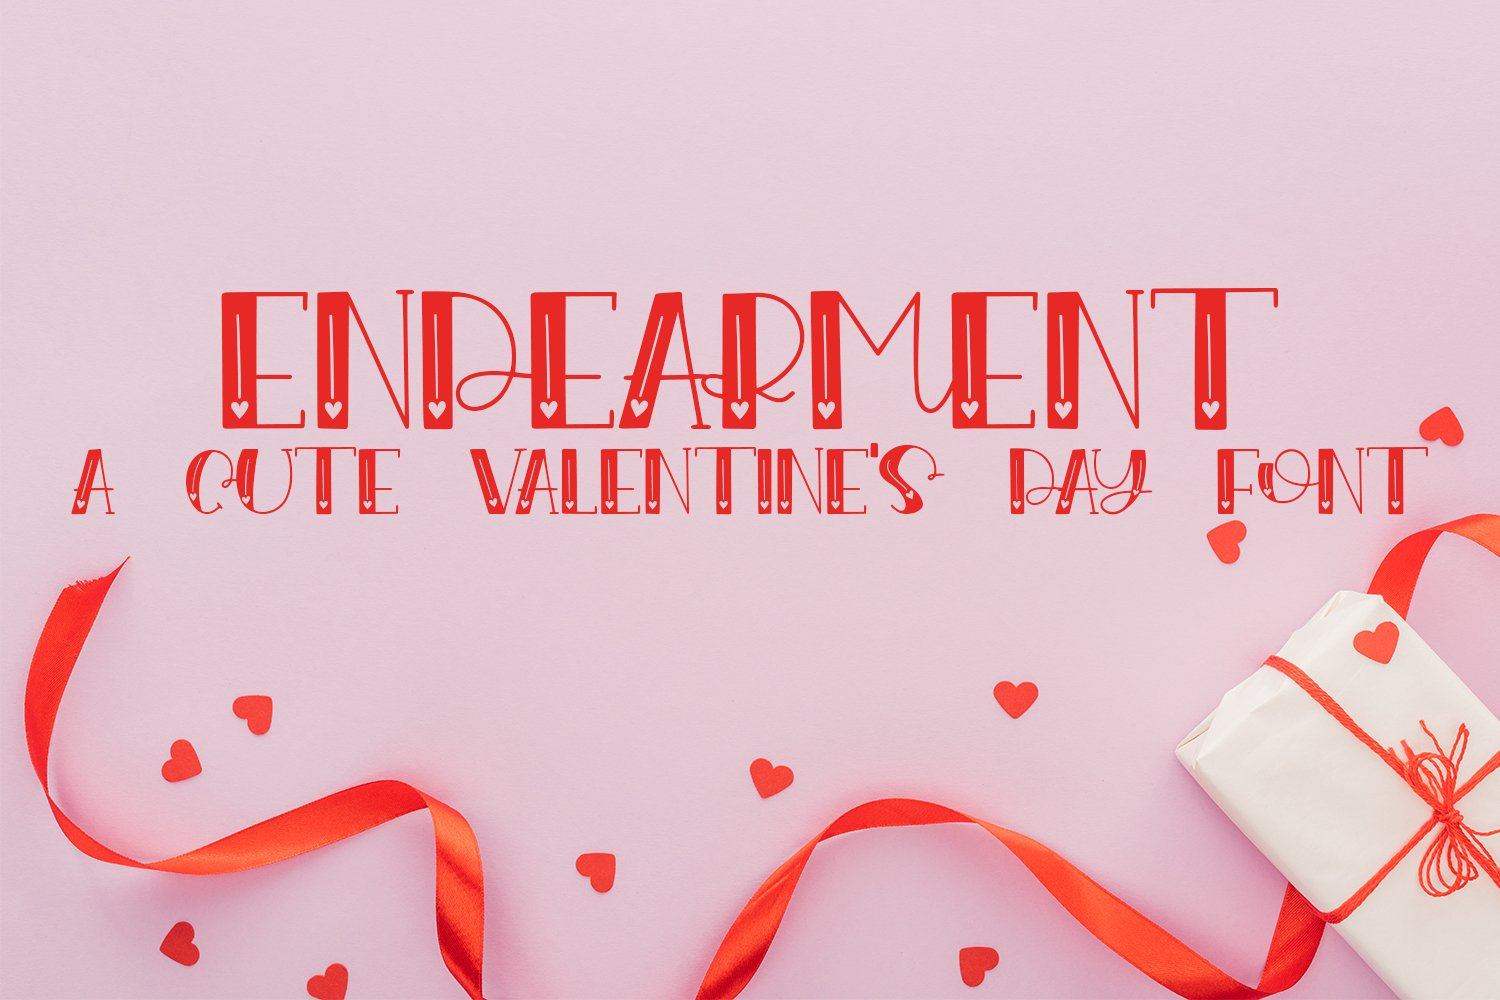 Endearment - A Valentine's Day Hand-Lettered Font example image 1